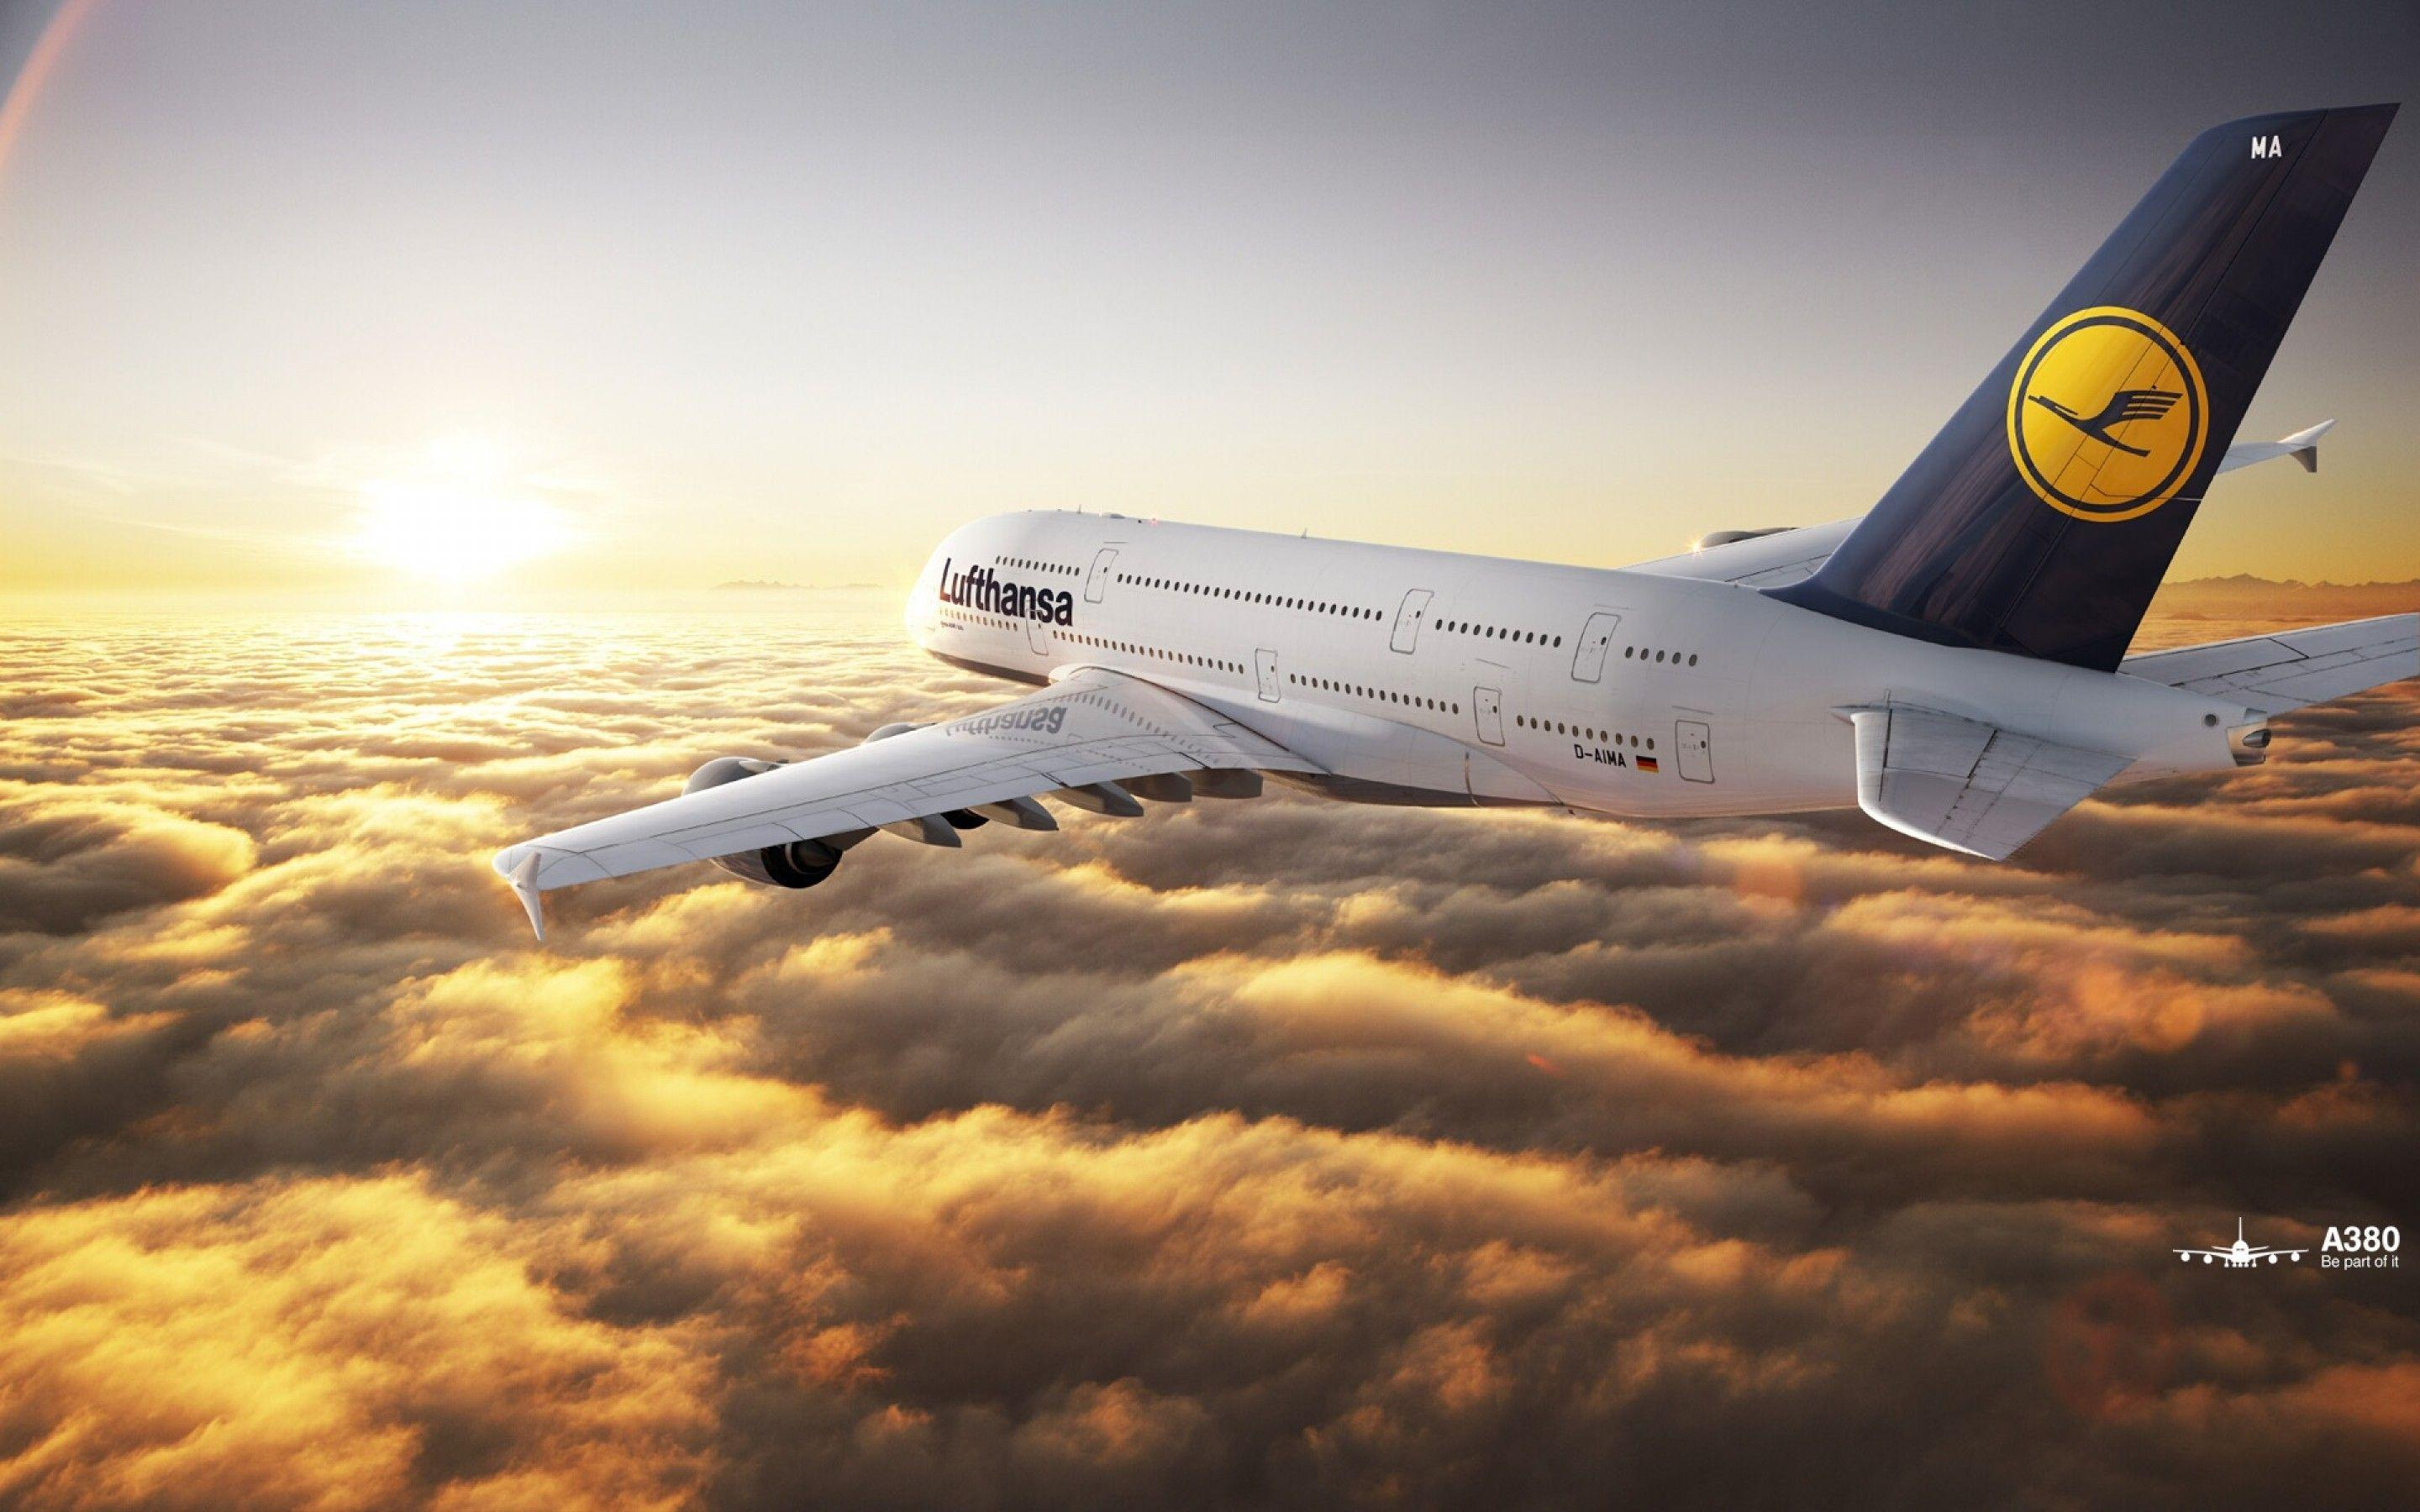 Airbus A380 Wallpapers